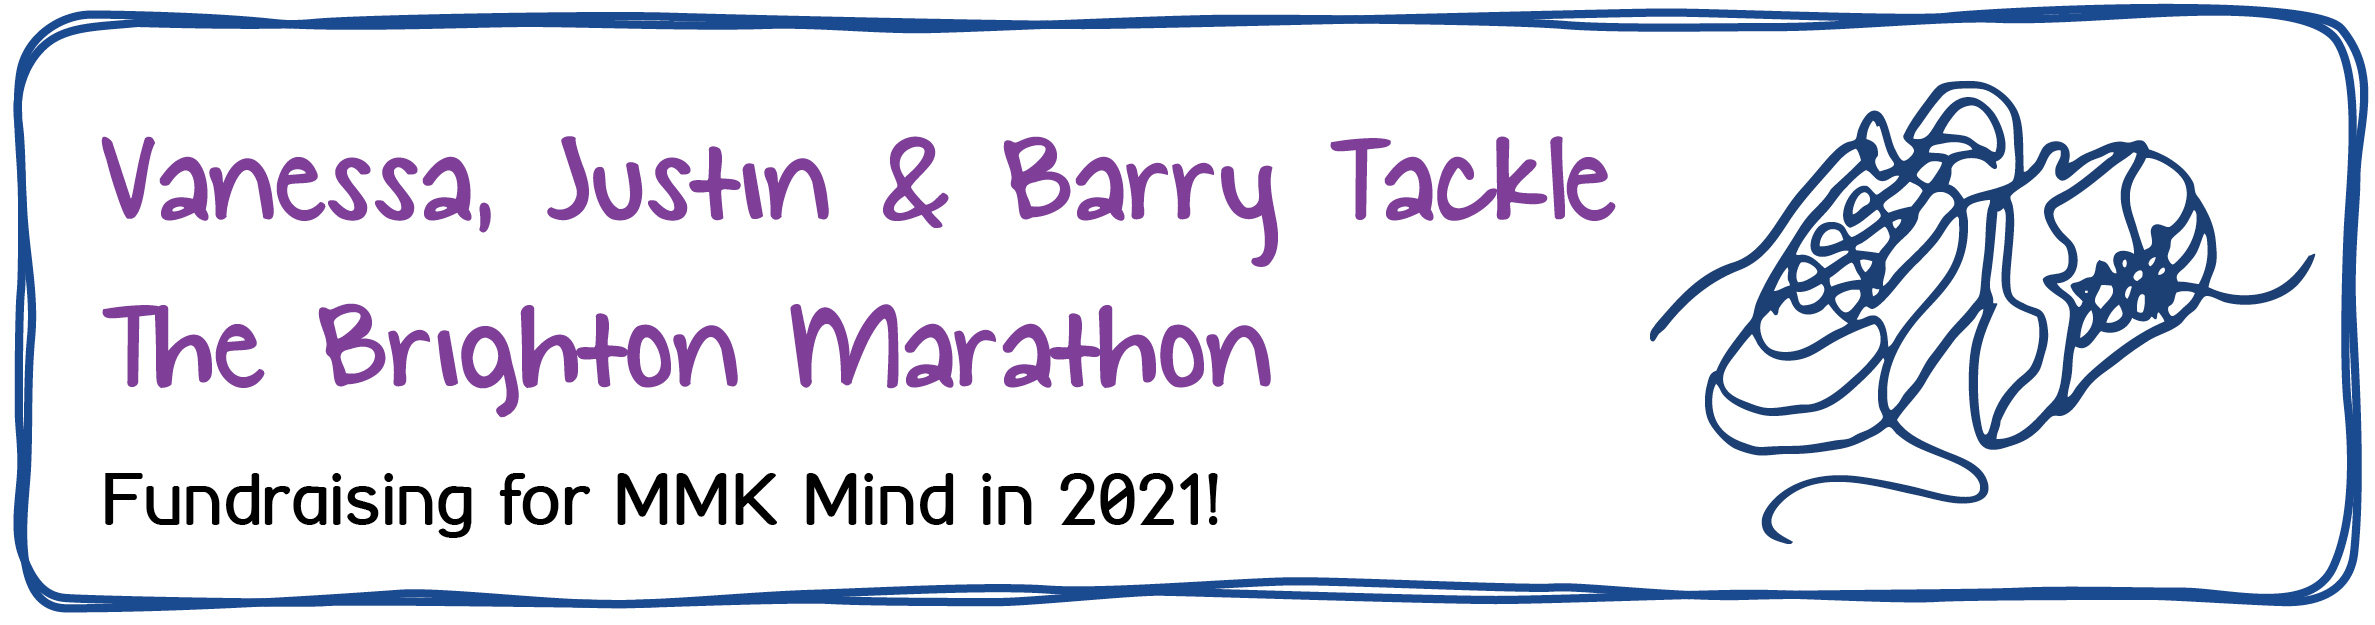 Vanessa, Justin and Barry Tackle The Brighton Marathon. Fundraising for MMK Mind in 2021.